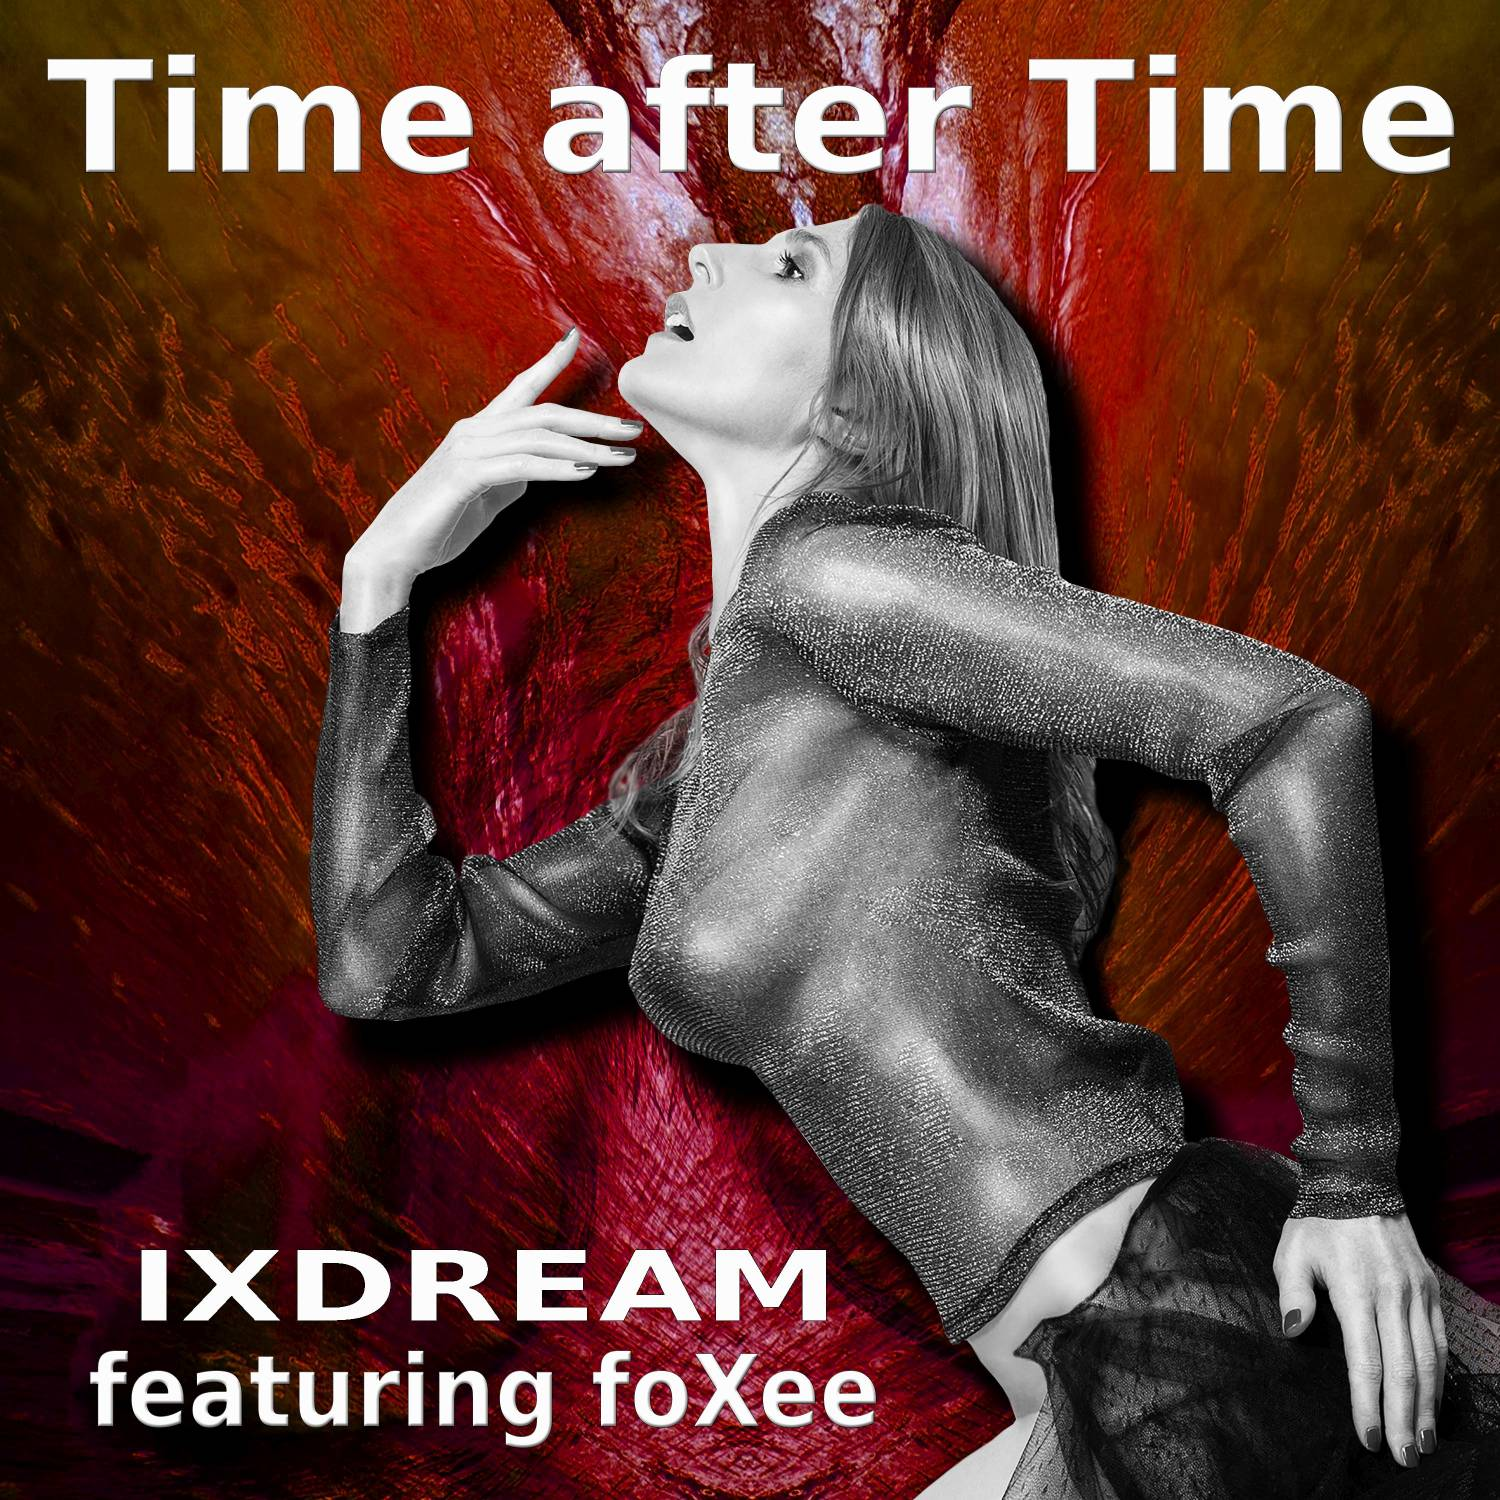 IXDREAM – TIME AFTER TIME featuring foXee